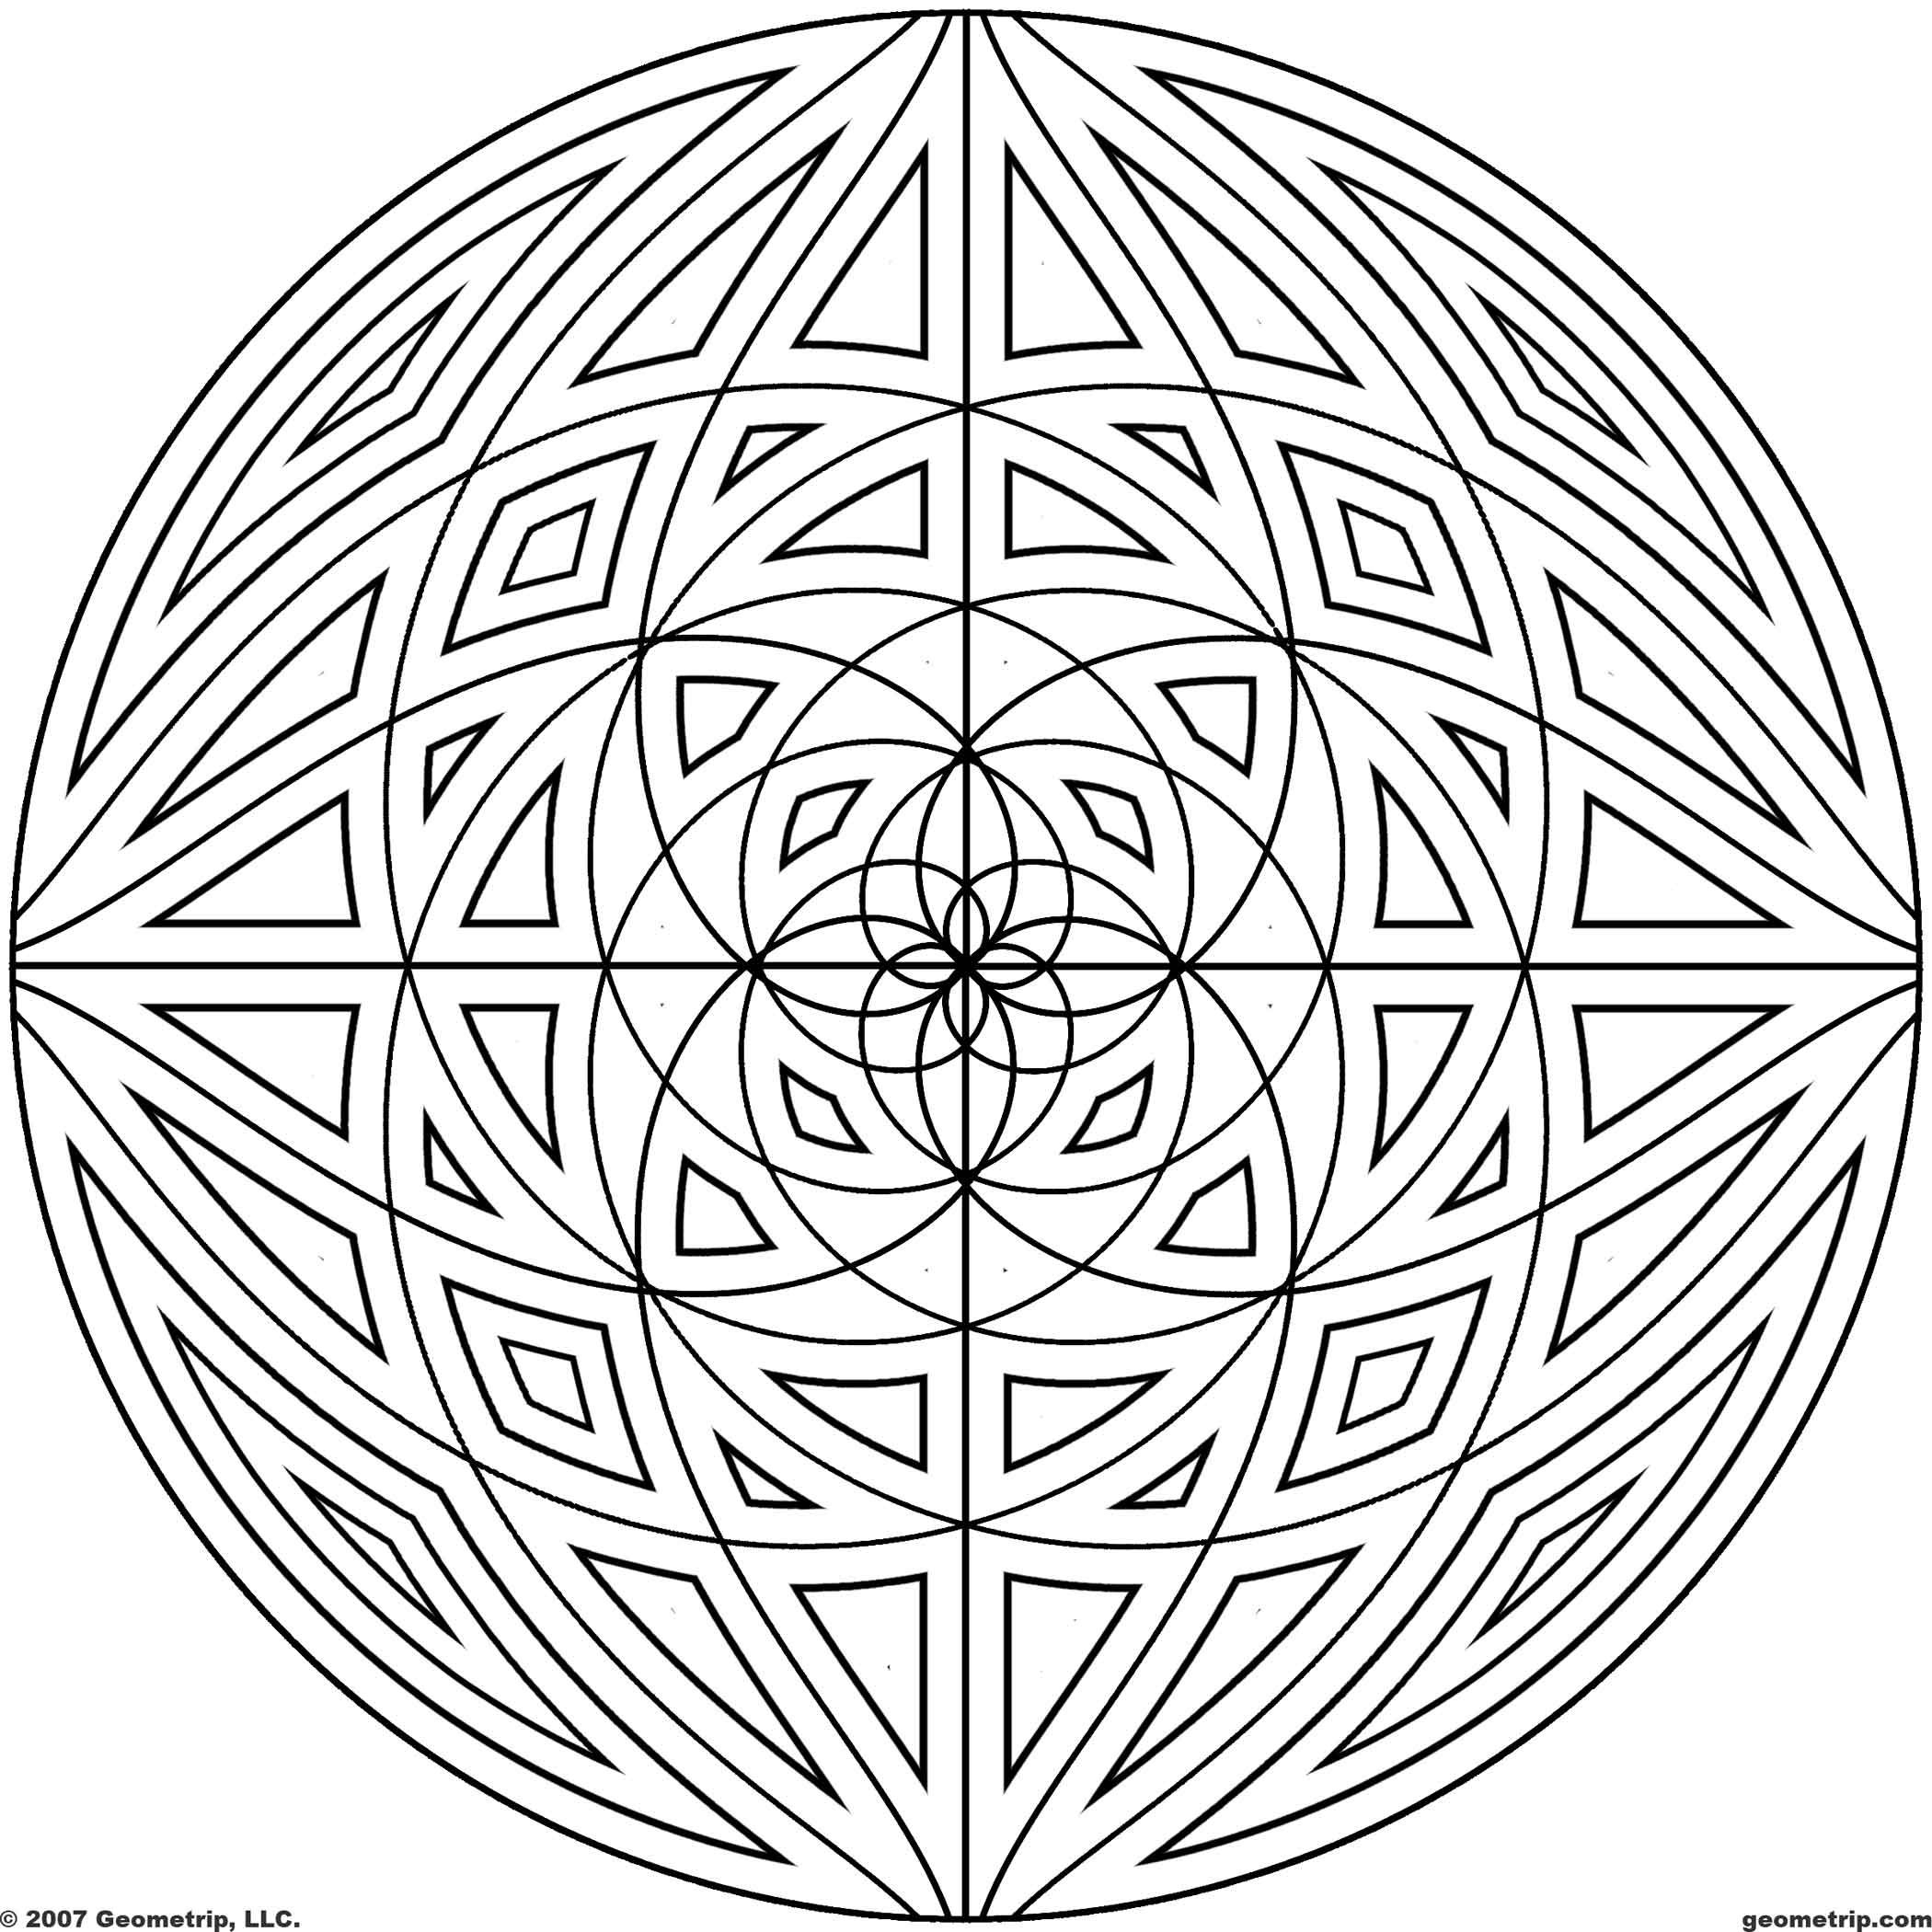 Detailed Coloring Pages For Adults | Geometrip.com - Free Geometric ...